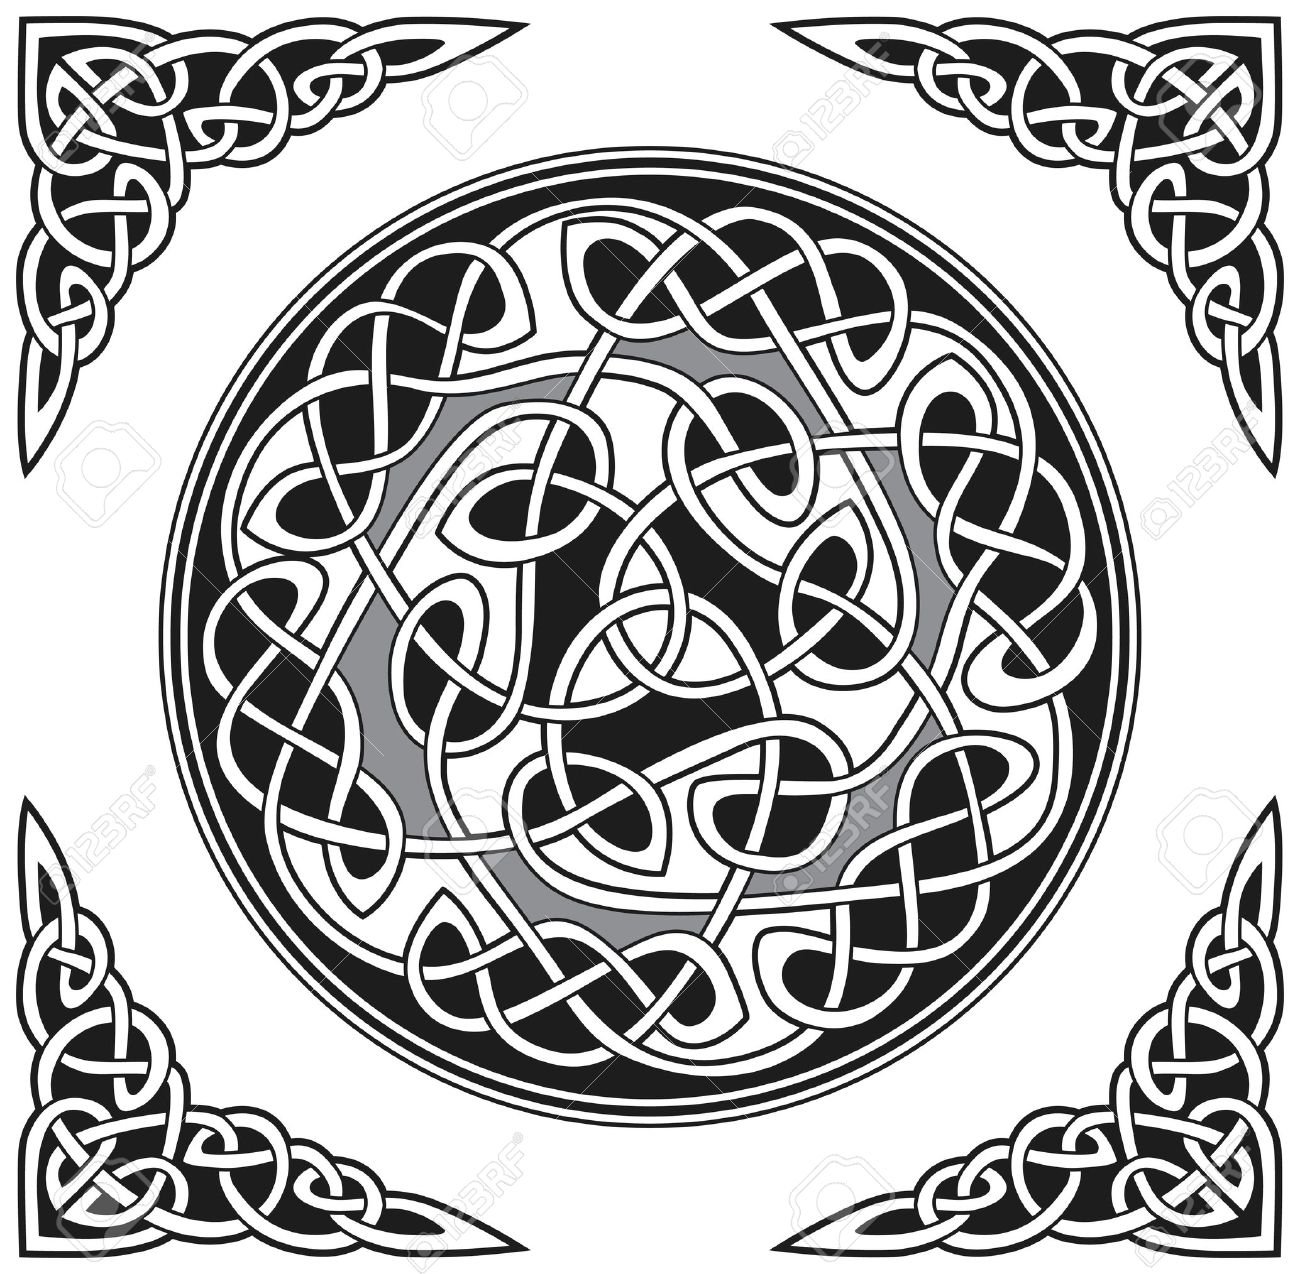 Celtic vector design Stock Vector - 8504044